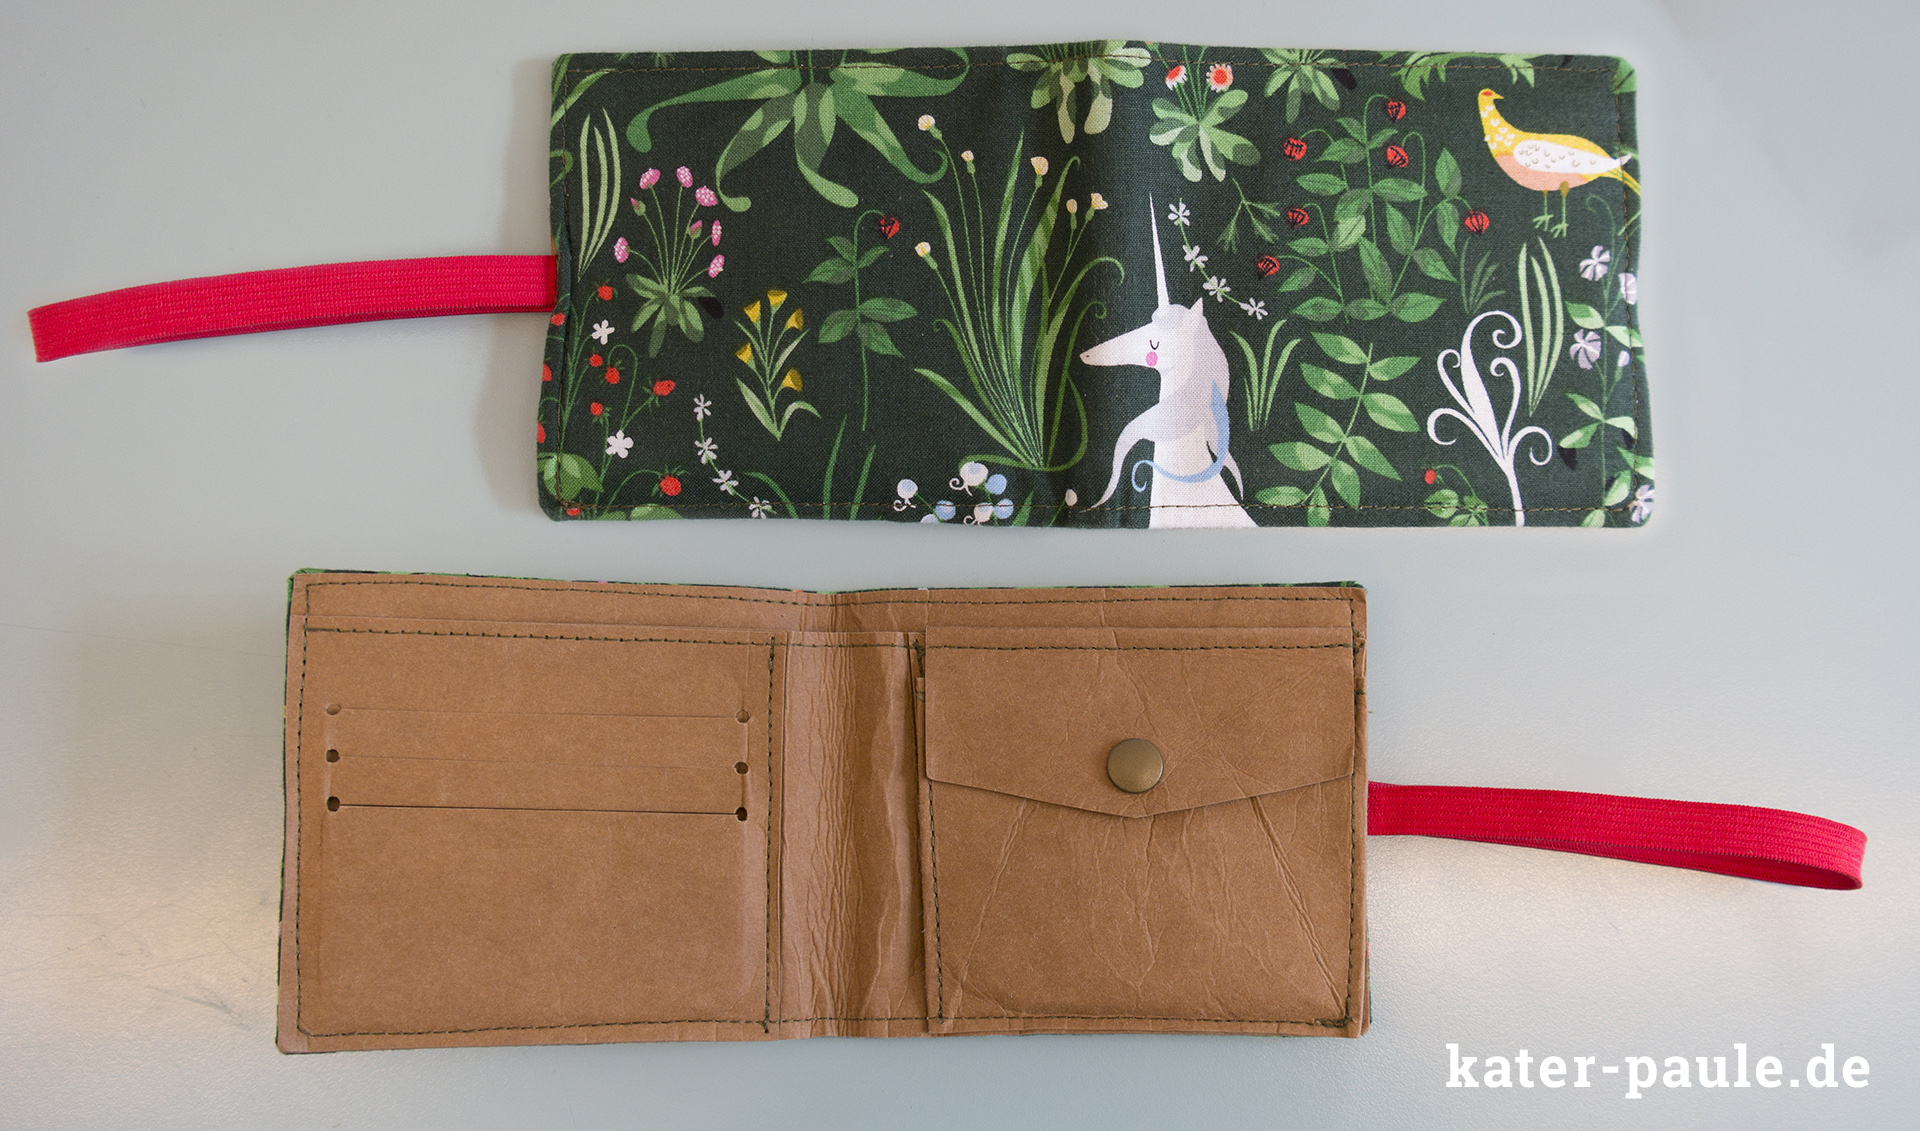 Kleine Geldbörse aus SnapPap nach dem Freebook von Pattydoo // Geldbeutel / The Lovely Hunt Unicorn / Andover Fabrics / Lizzy House / Wallet / KAM-Snaps / Snaply